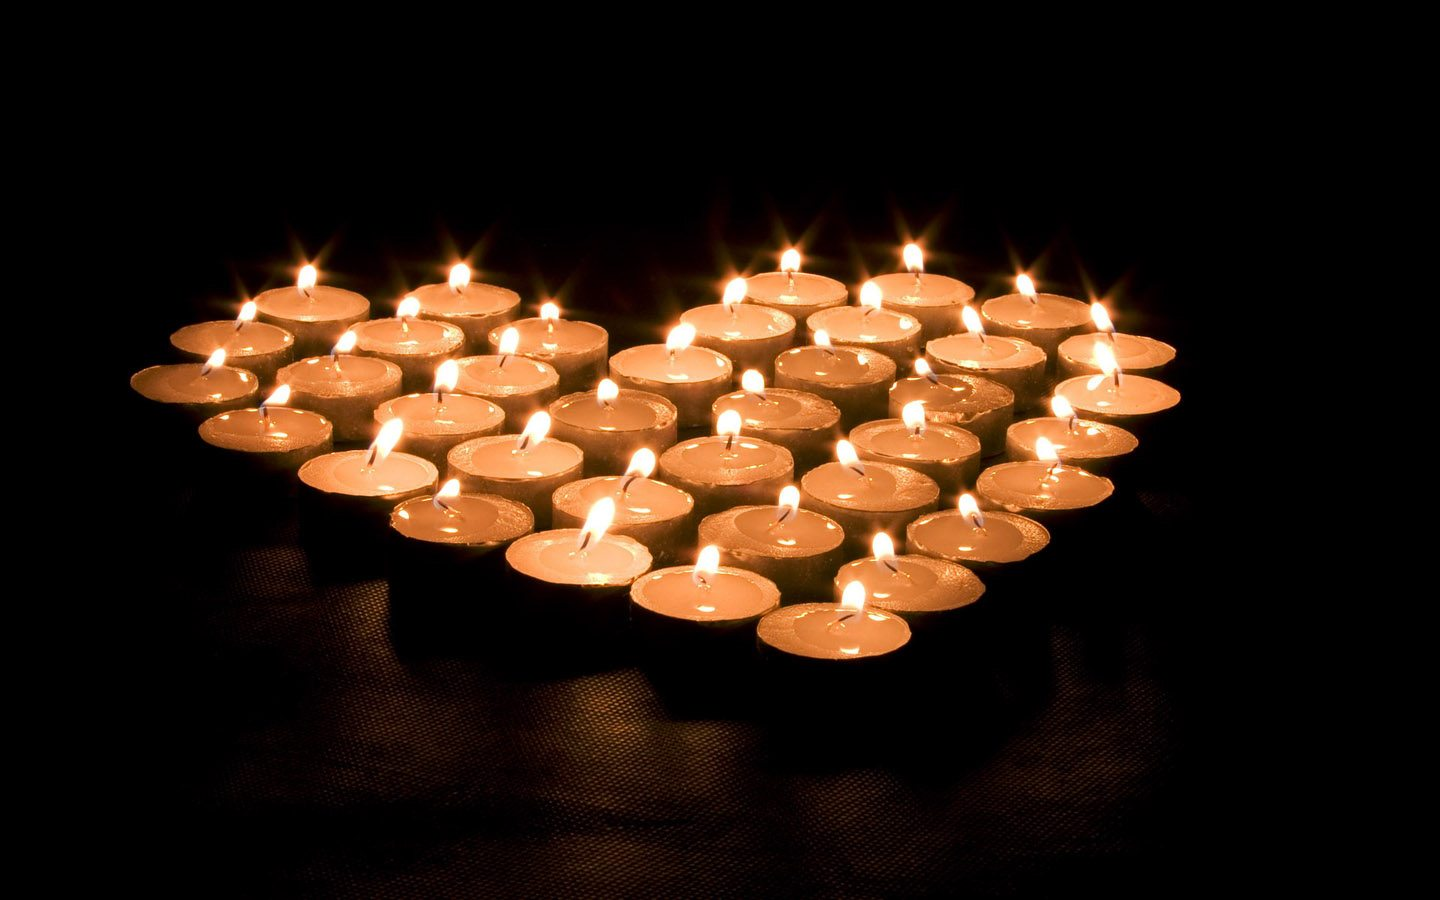 gay-express-ending-aids-together-candlelight-memorial